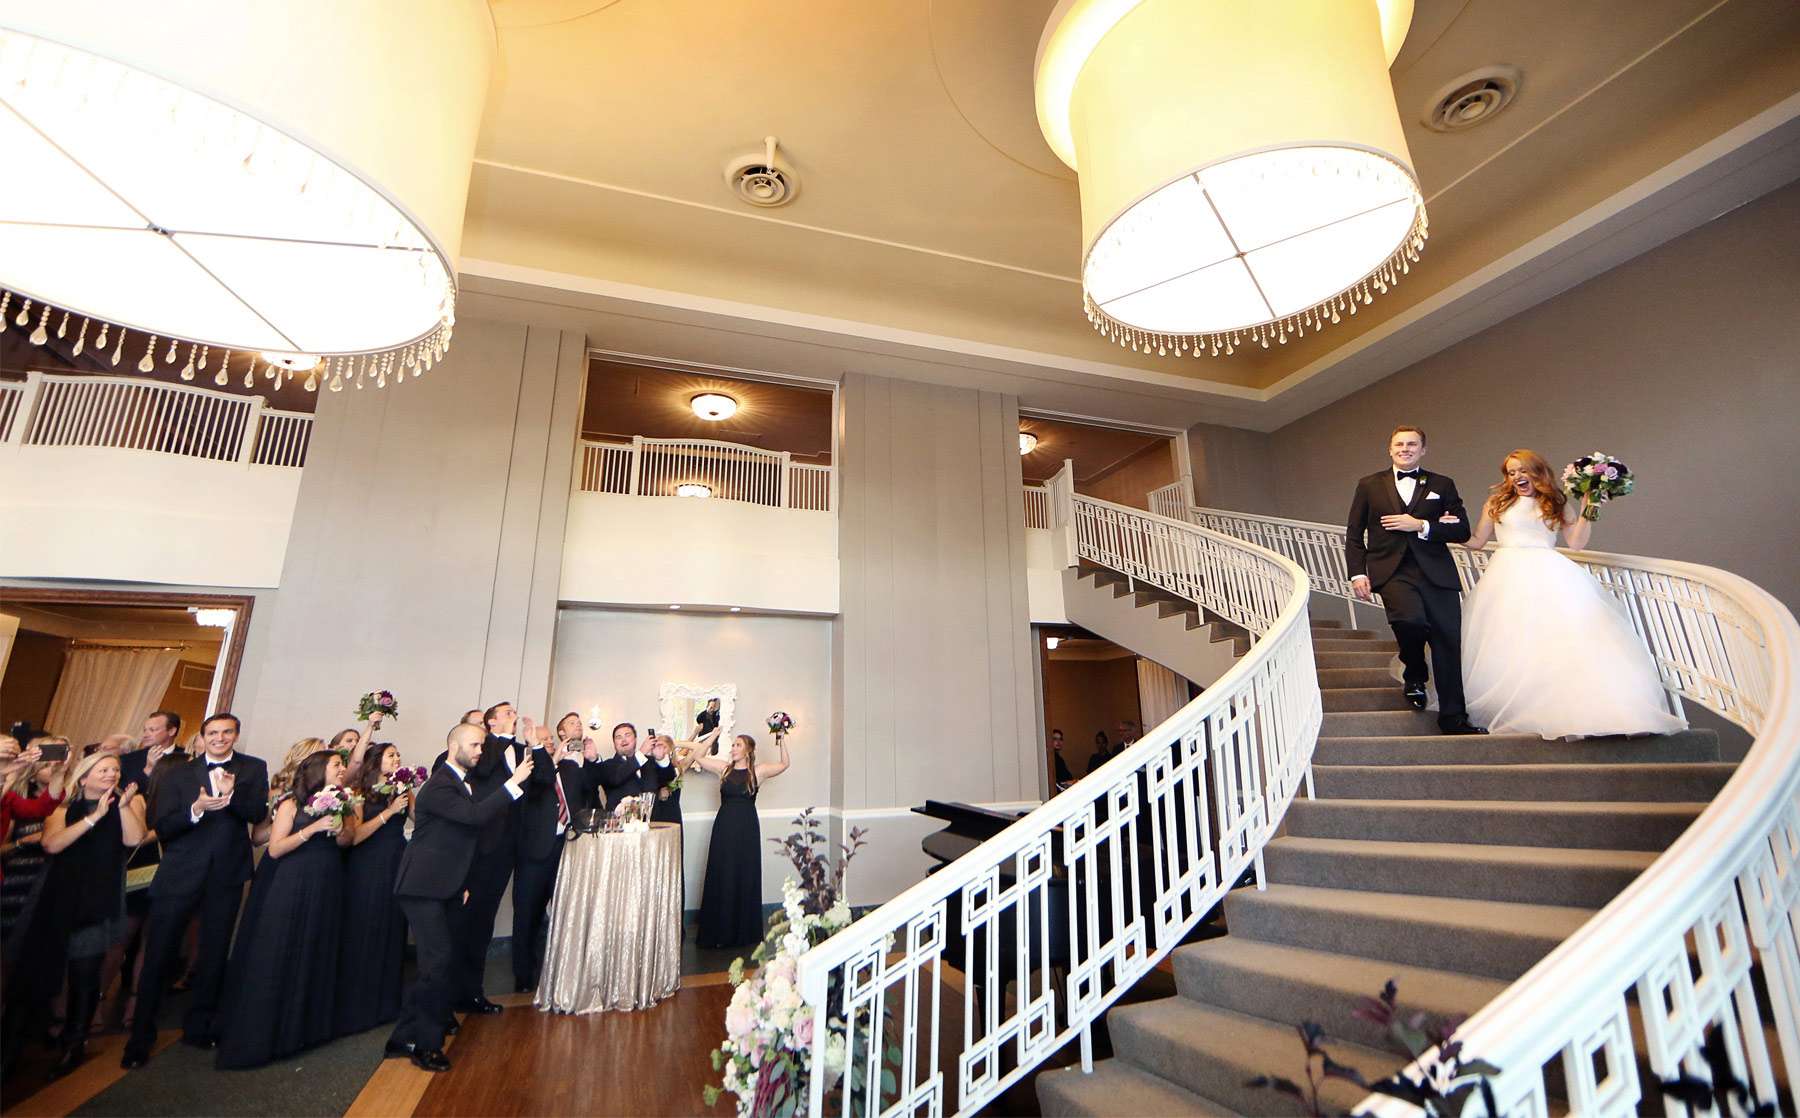 26-Minneapolis-Minnesota-Wedding-Photographer-by-Andrew-Vick-Photography-Fall-Autumn-Calhoun-Beach-Club-Reception-Bride-Groom-Grand-March-Guests-Staircase-Stairs-Kristy-and-Jack.jpg